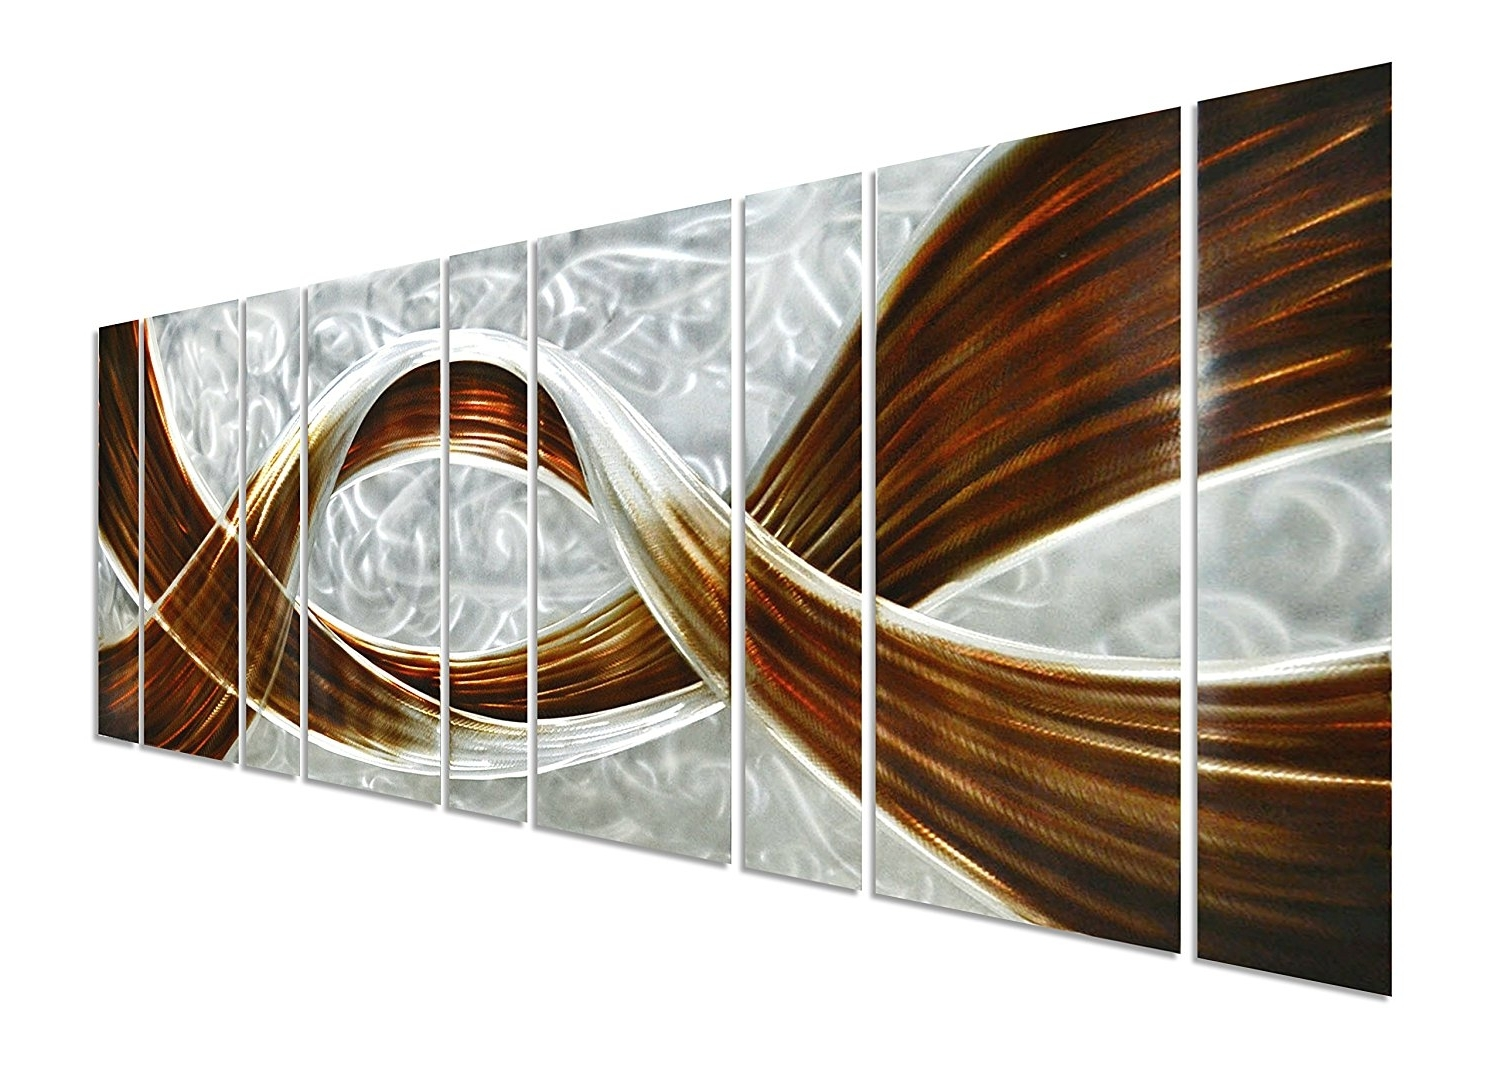 Most Popular Big Metal Wall Art Intended For Amazon: Pure Art Caramel Desire Metal Wall Art, Giant Scale (View 11 of 15)